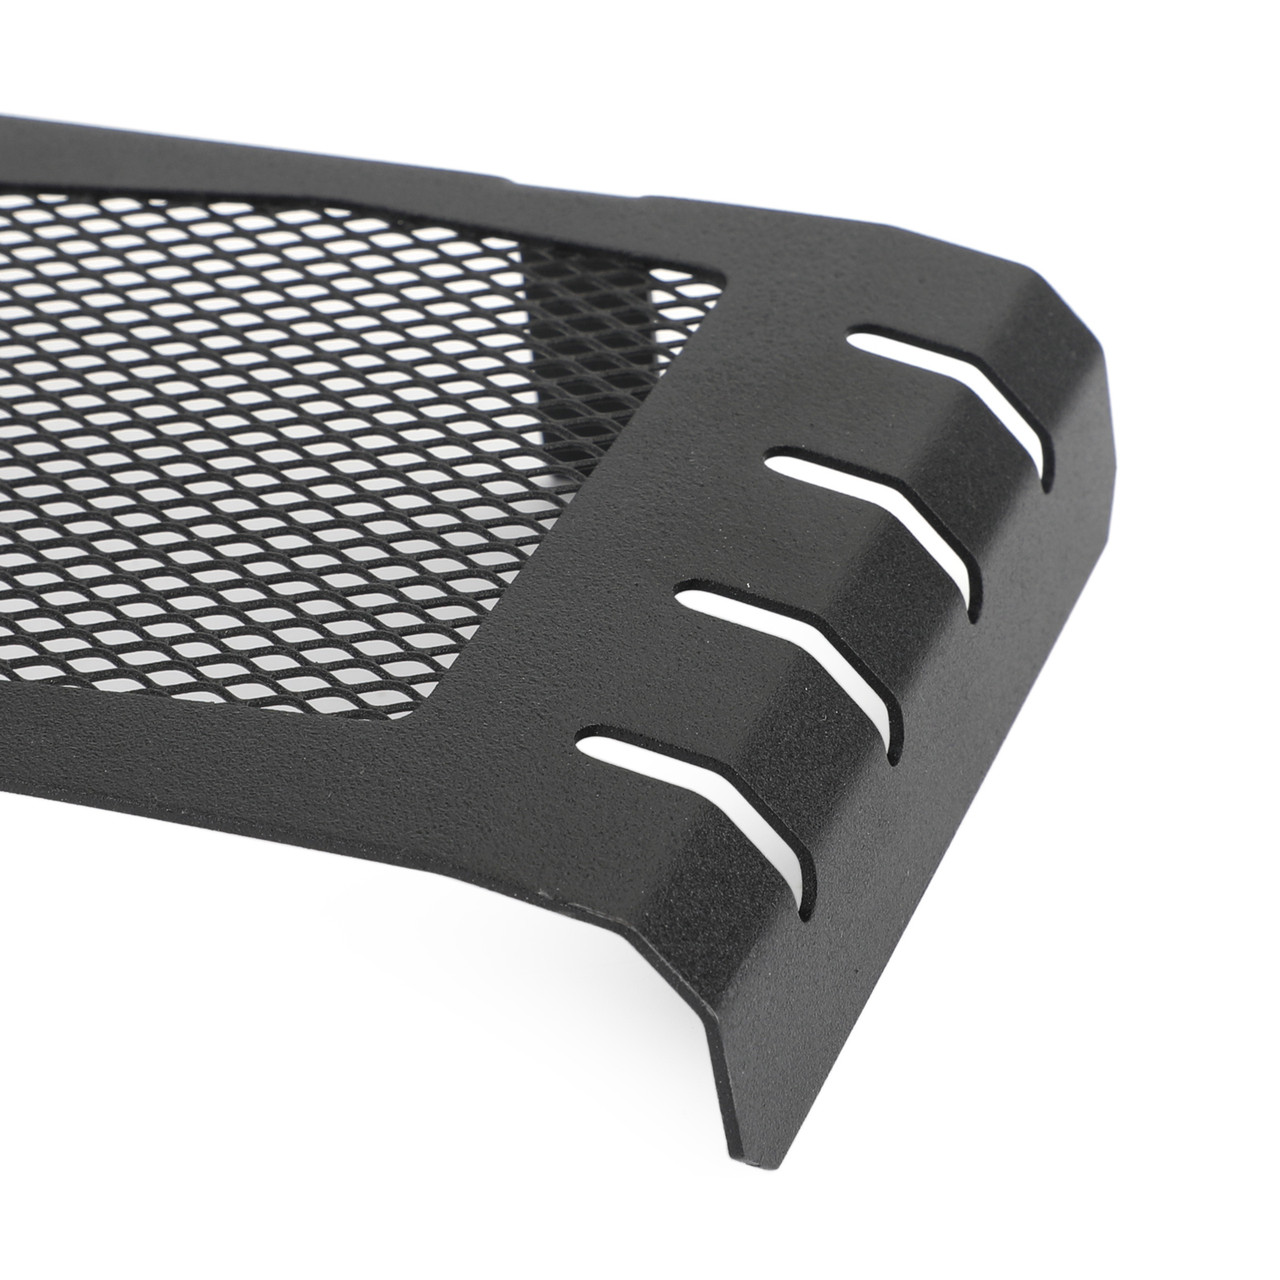 Stainless Steel Radiator Guard Protector Grill Cover Fit For Honda CB1100/R 1100RS 1100EX 13-19